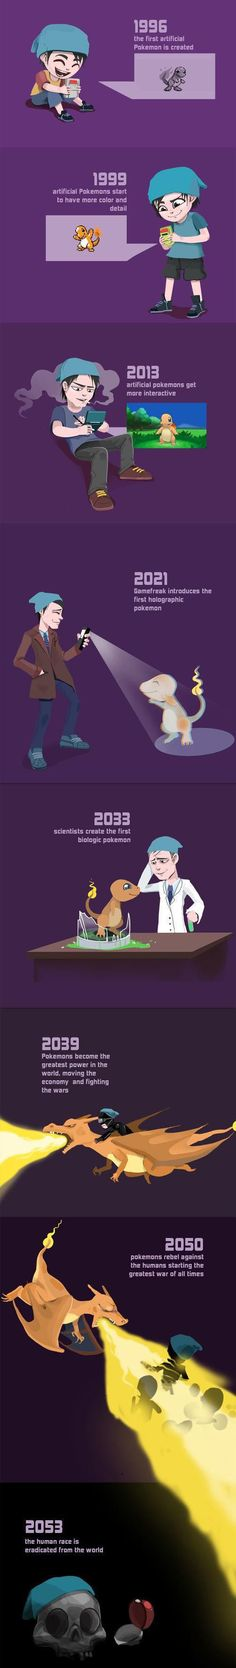 Pokemon in the future // funny pictures - funny photos - funny images - funny pics - funny quotes - #lol #humor #funnypictures